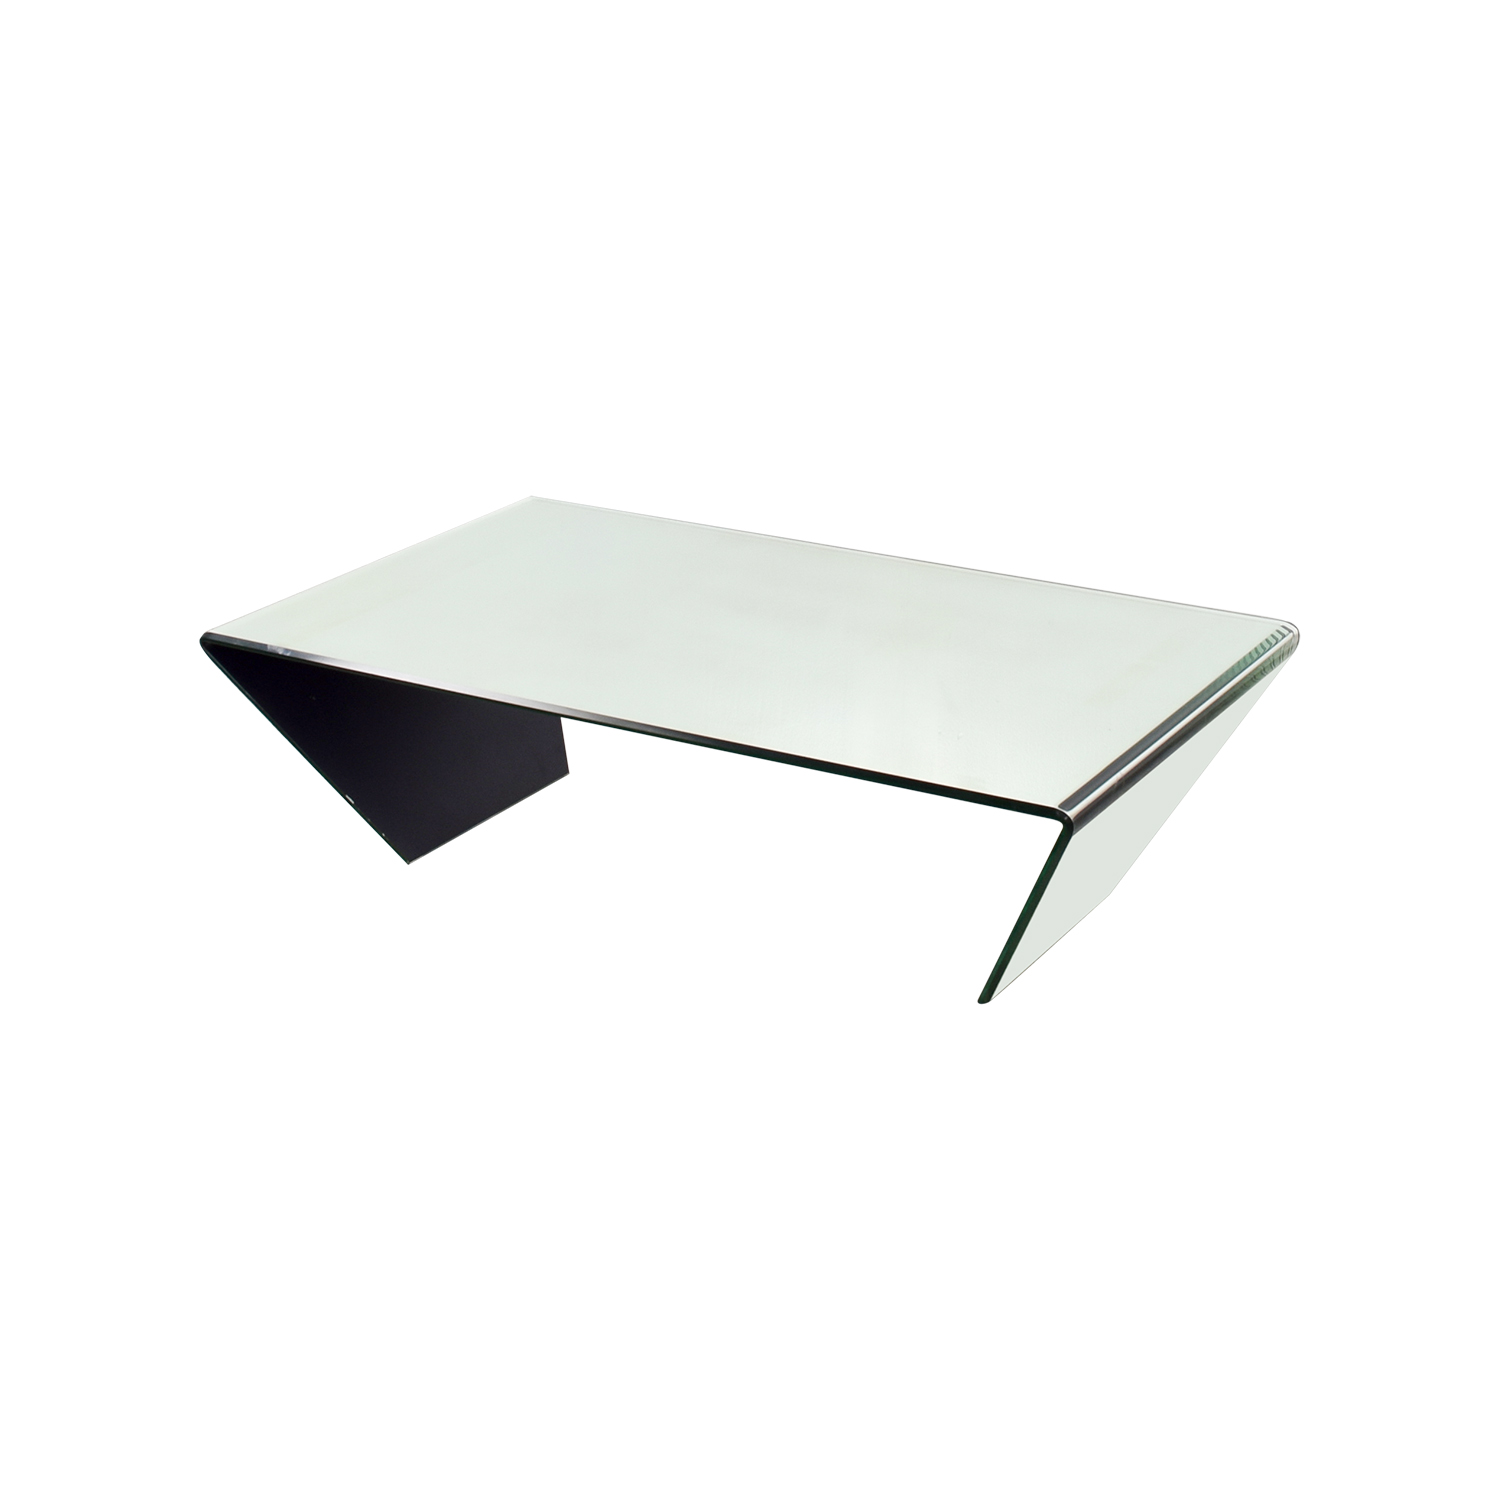 J & M Furniture J & M Furniture Bent Mirrired Glass Coffee Table on sale